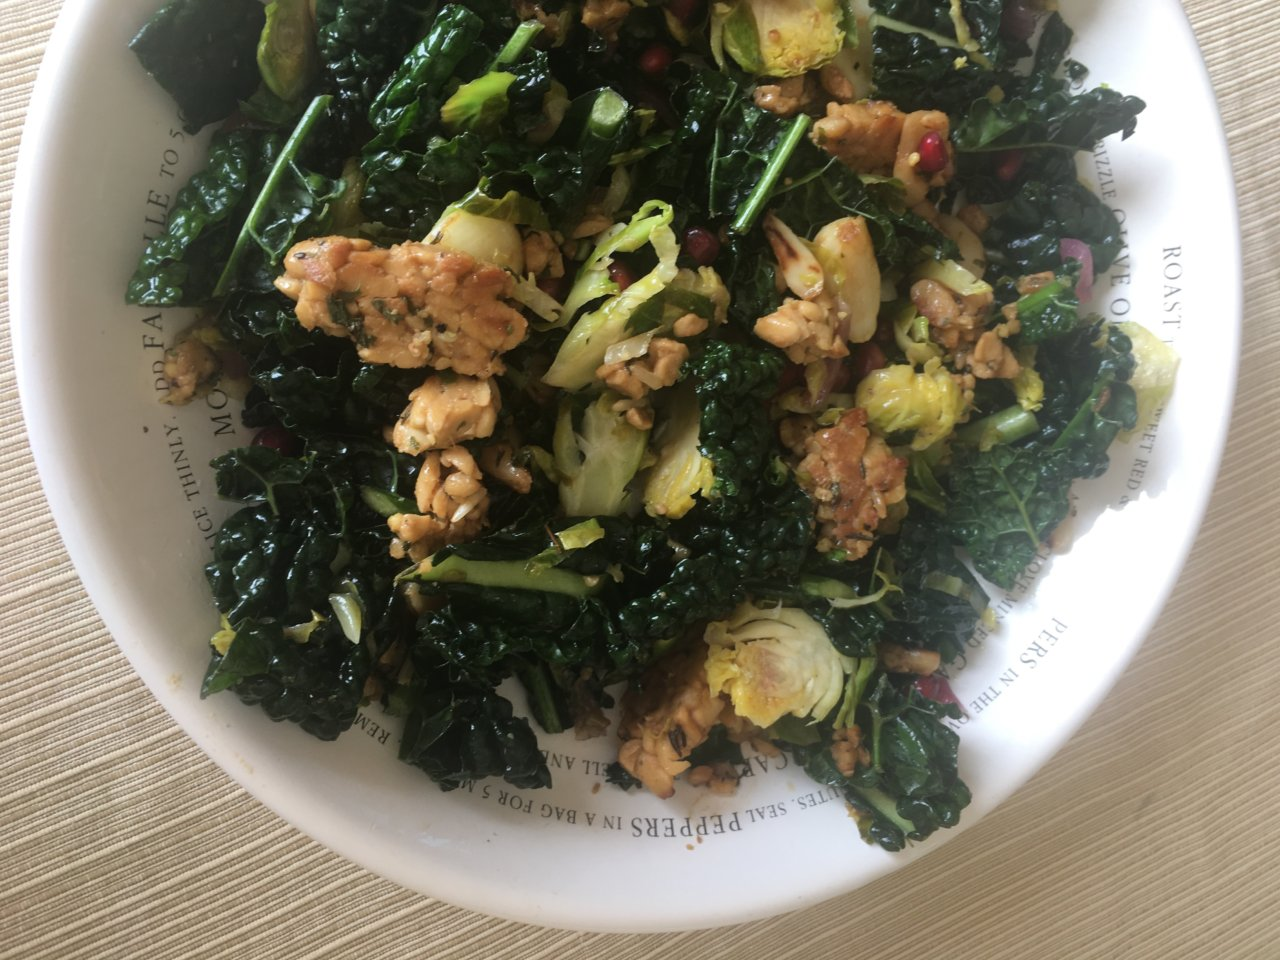 Kale-Brussels-Sprouts-Salad-with-Pomegranate-Dressing-1280x960.jpg